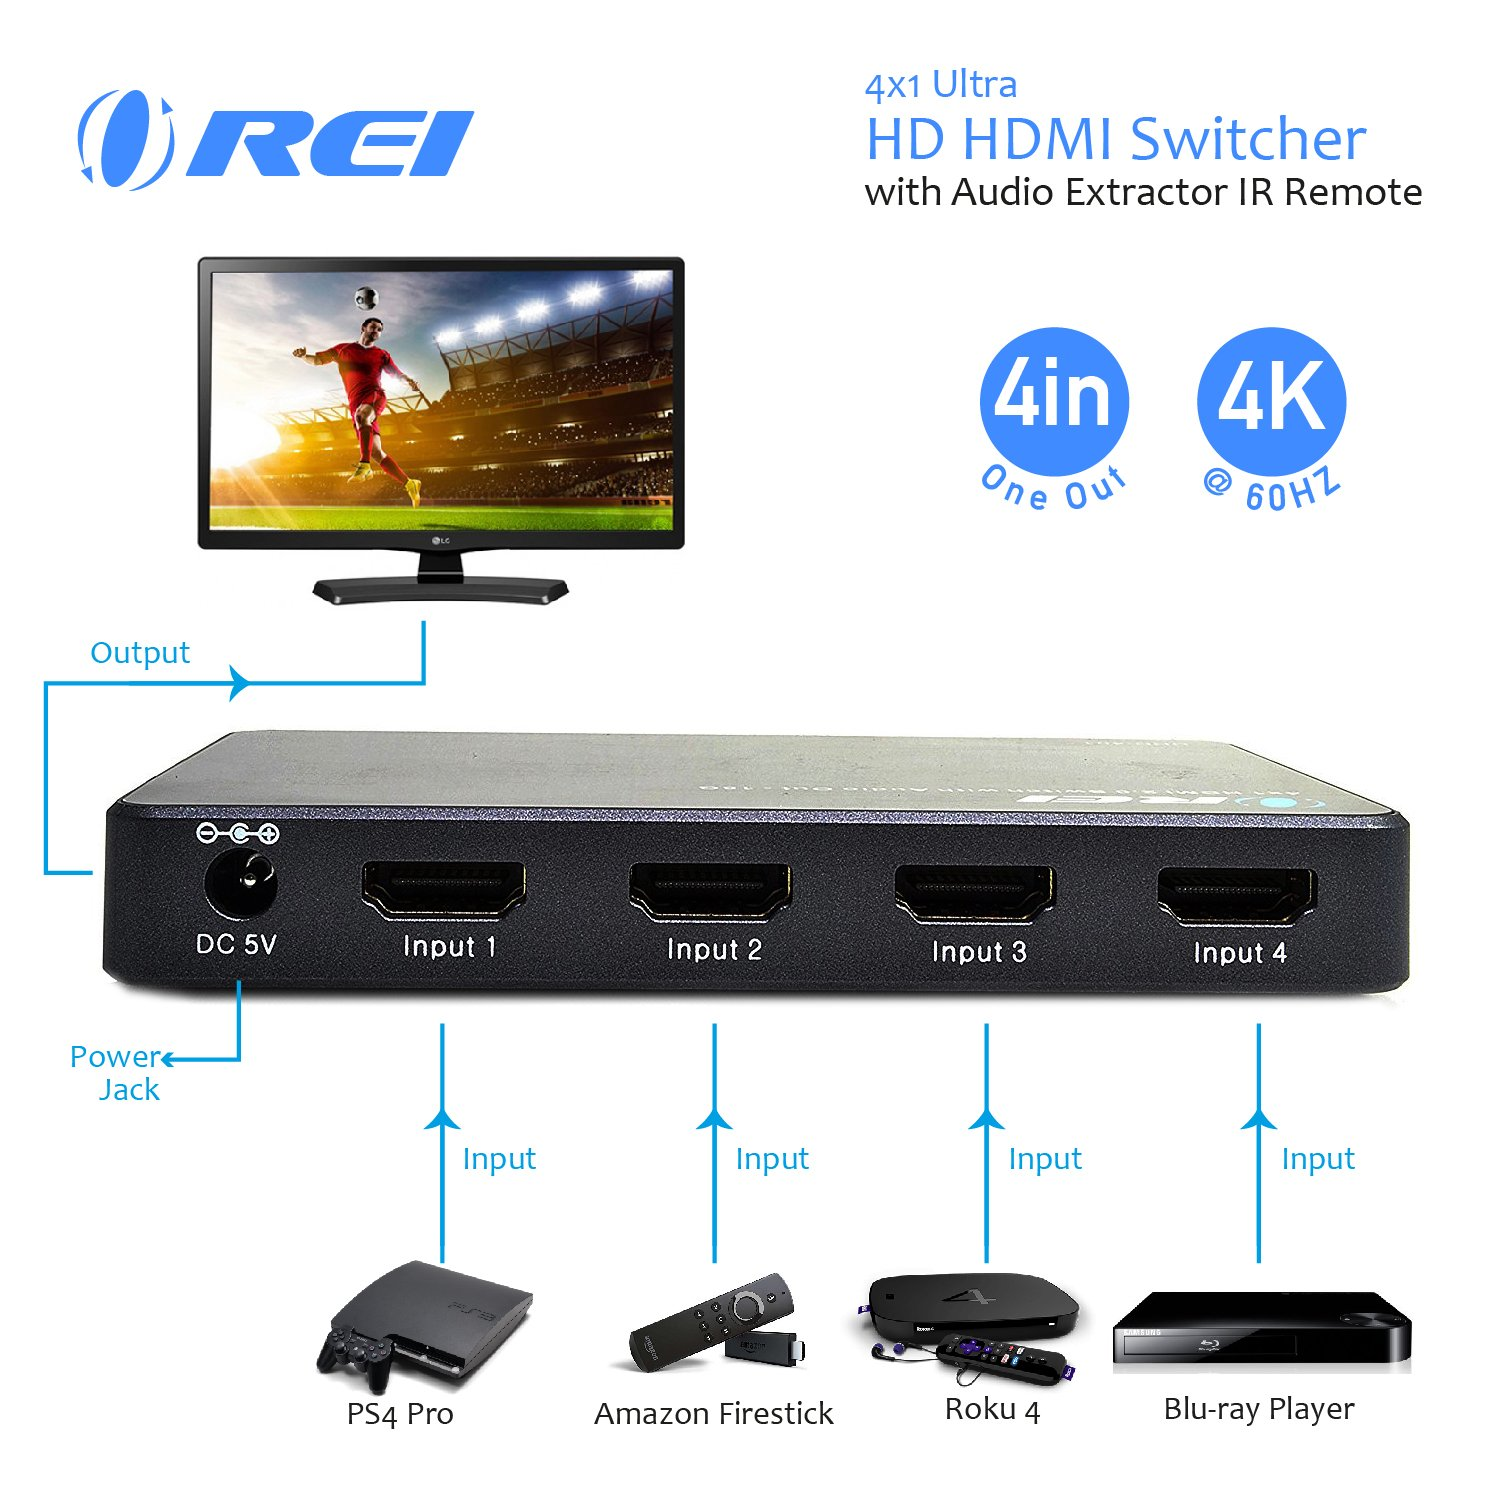 OREI 4 X 1 Ultra HD HDMI Switcher With Audio Extractor IR Remote - Supports Upto 4K @ 60Hz - (4 Input, 1 Output) Switch, Hub, Port for Cable, HD TV, Laptop, MacBook & More by OREI (Image #2)